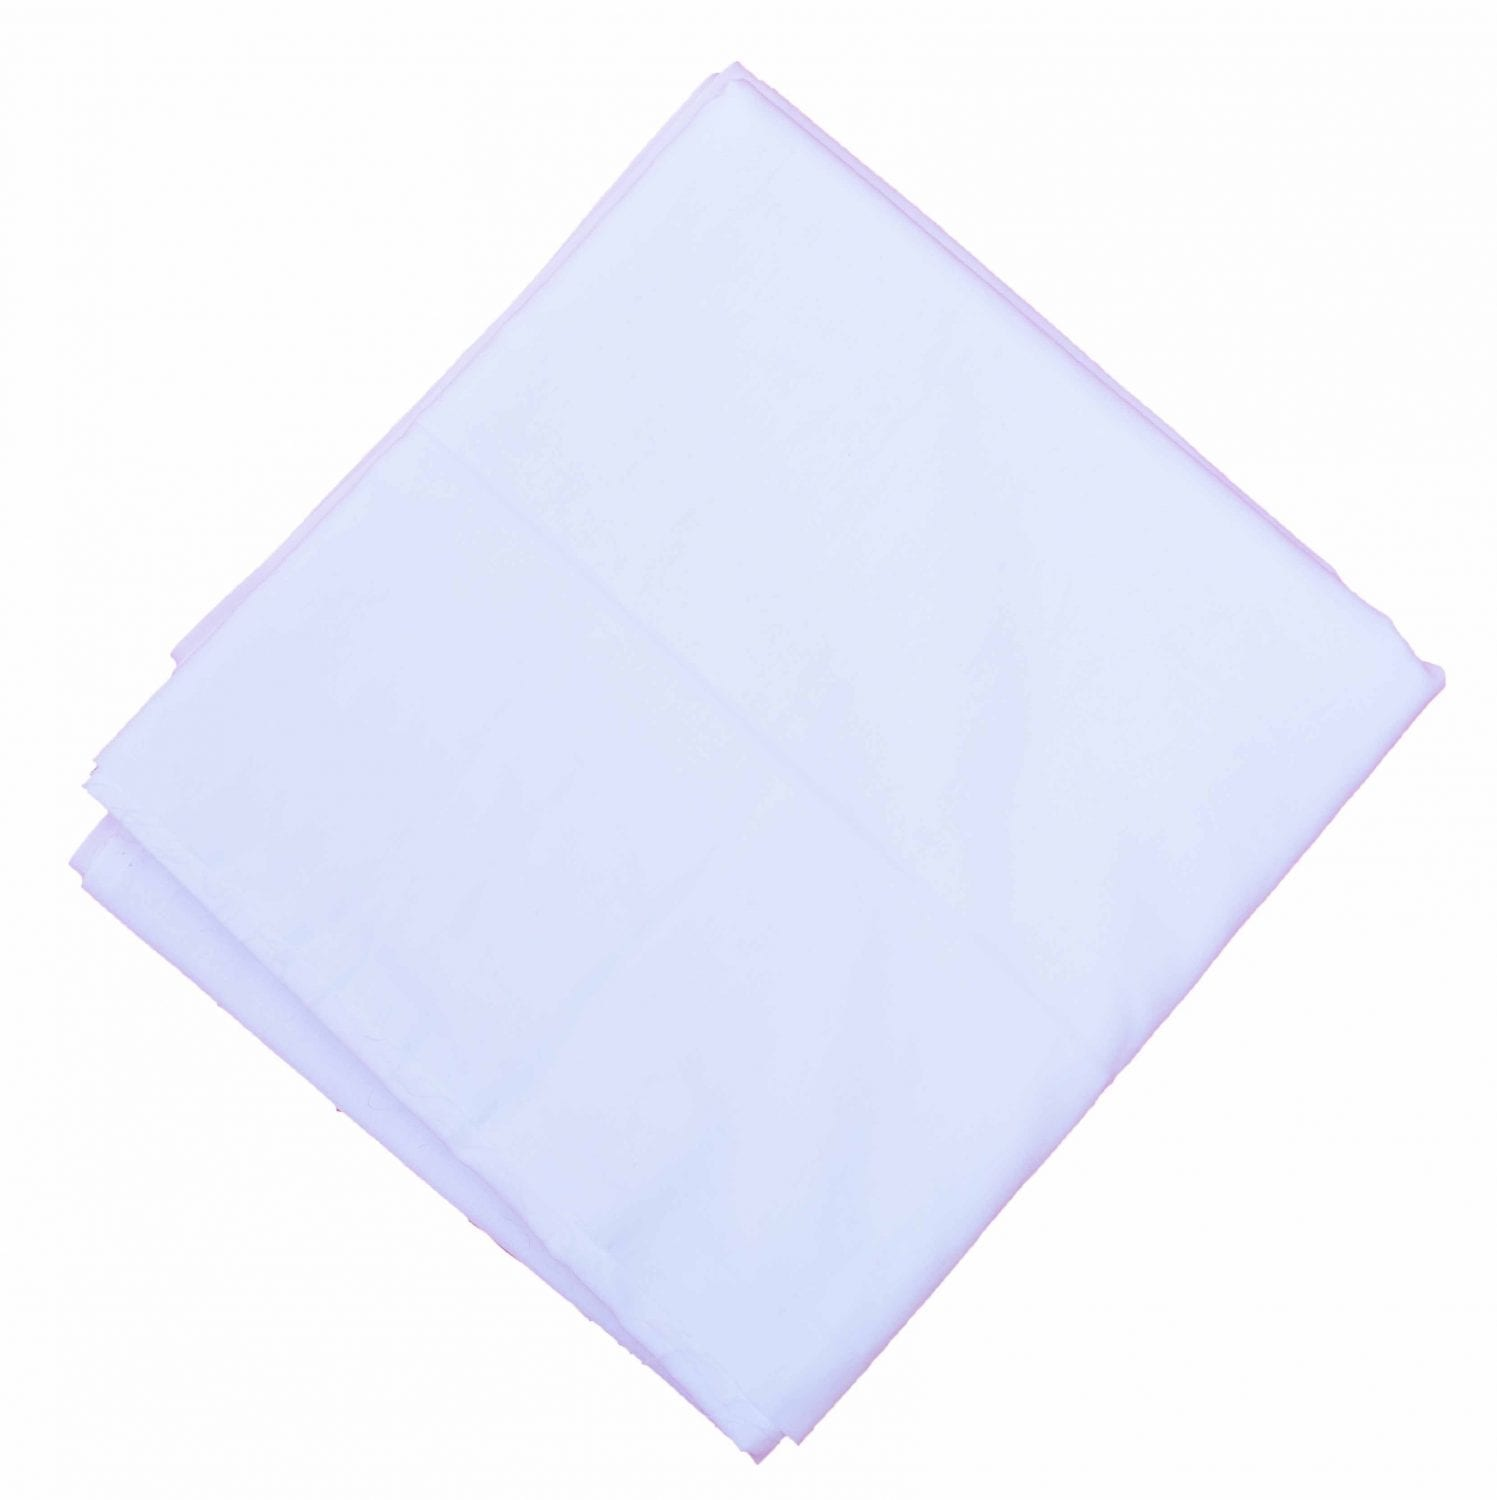 Plain Cotton Cutpiece Dress Material - 100% Pure Soft Cotton Cloth 11